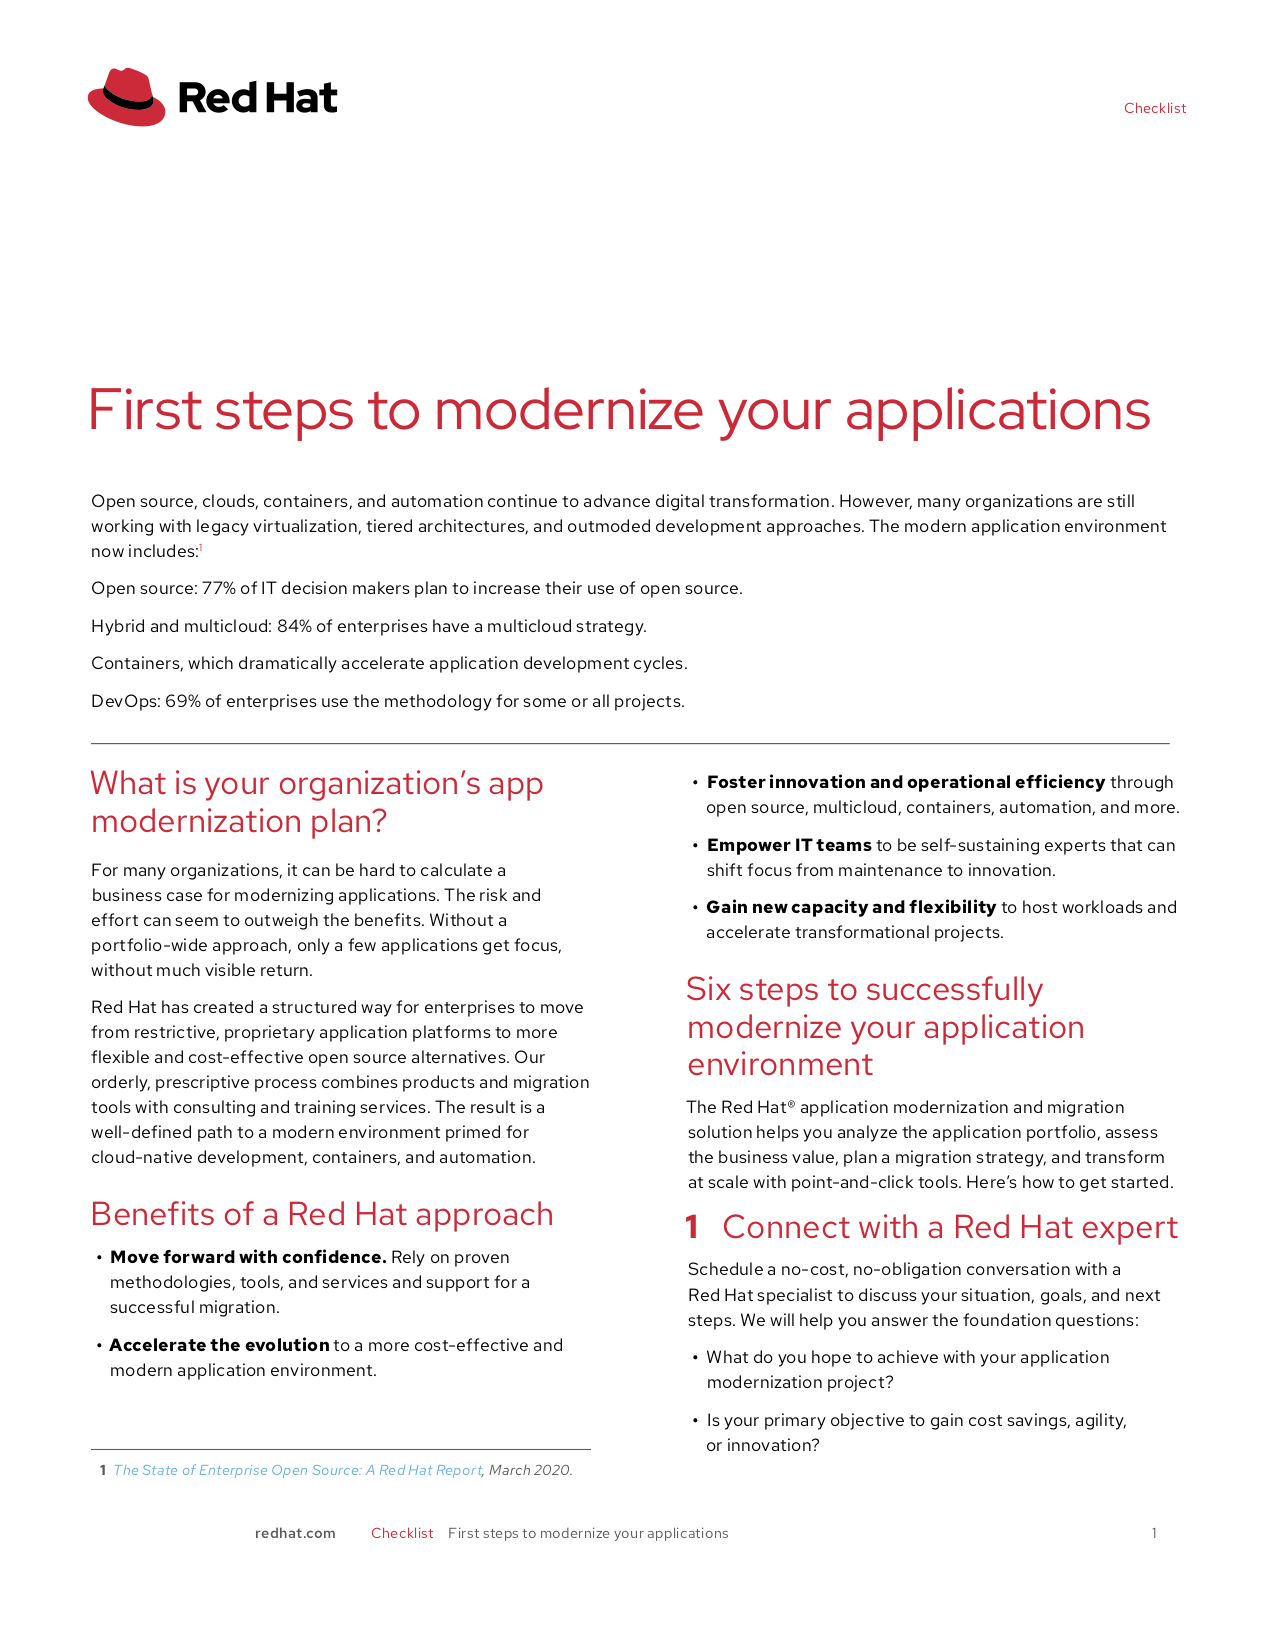 First Steps to Modernize Your Applications_cover